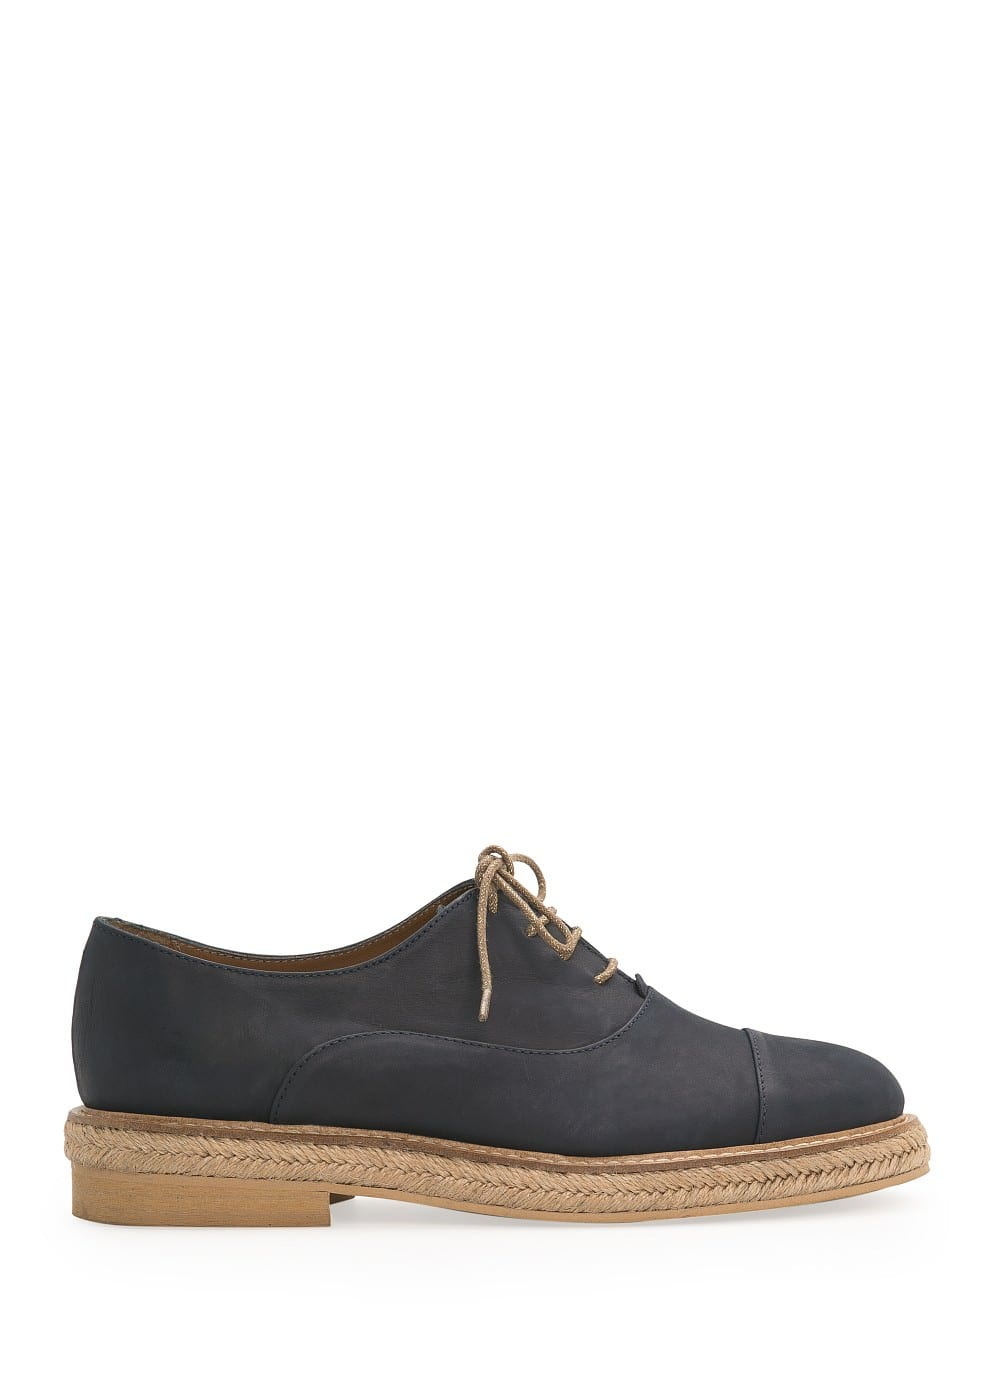 Zapato oxford nobuk esparto | MANGO KIDS